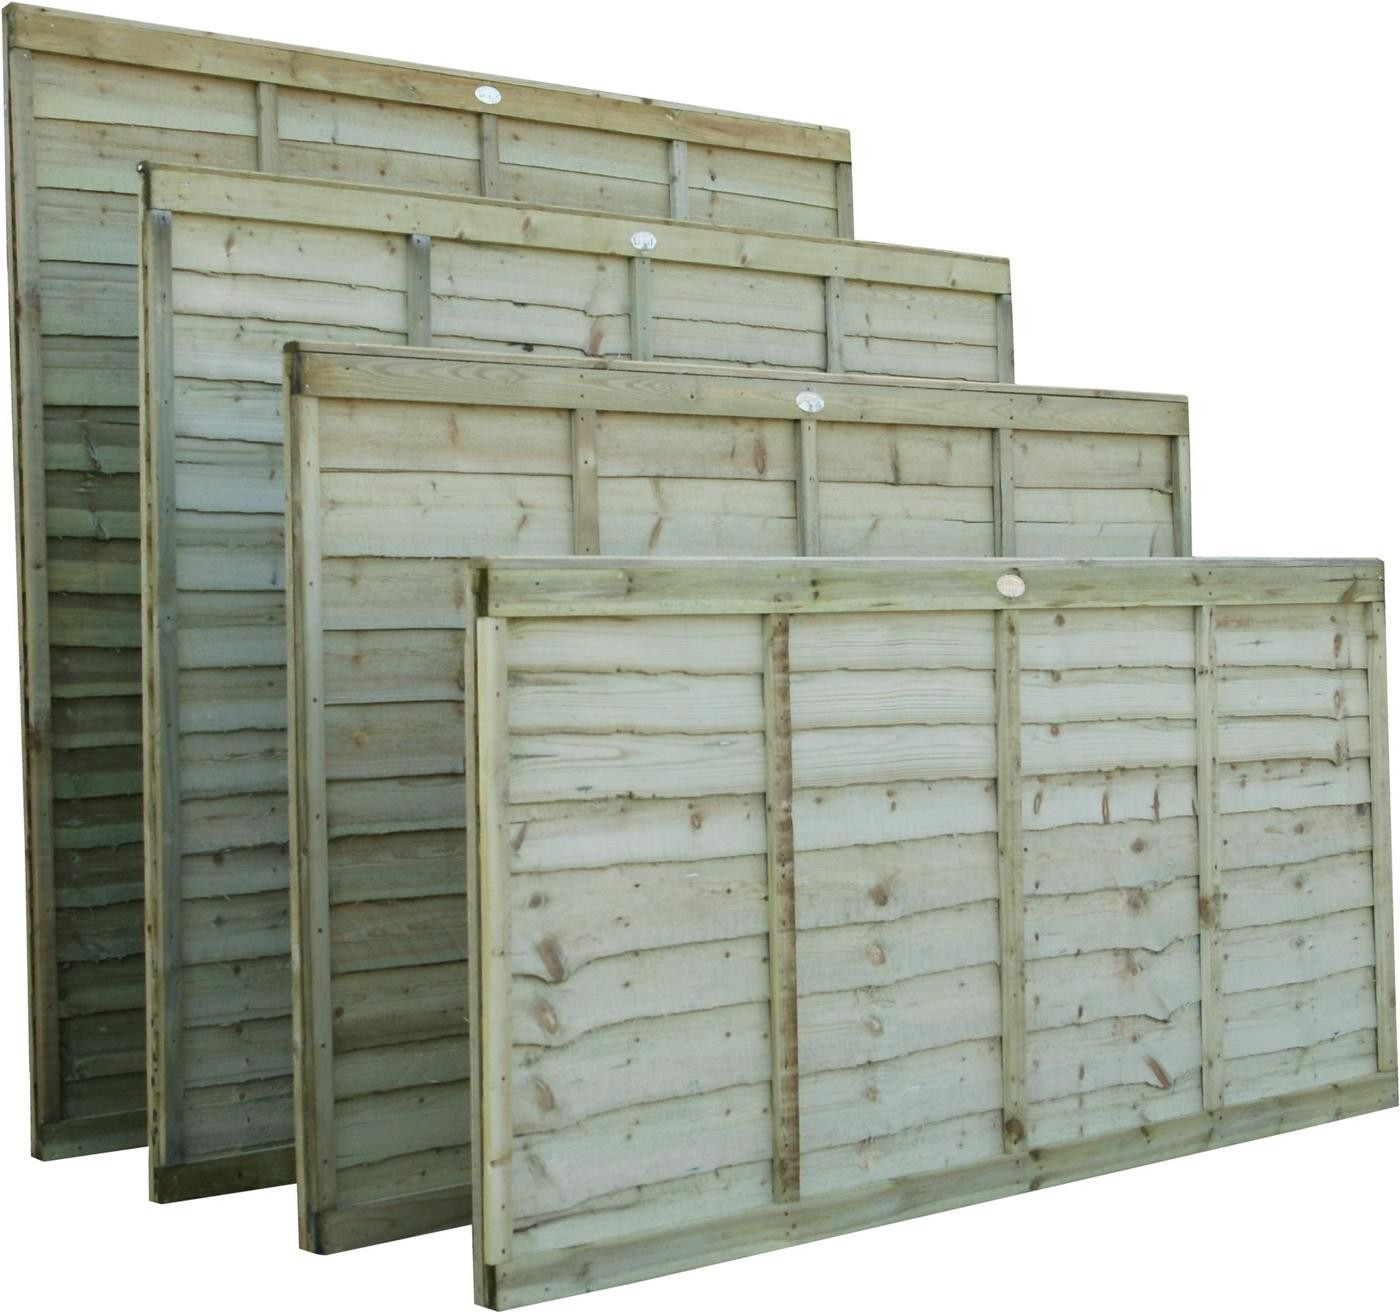 1830 x 1220mm Superlap Fence Panel (Professional) Green